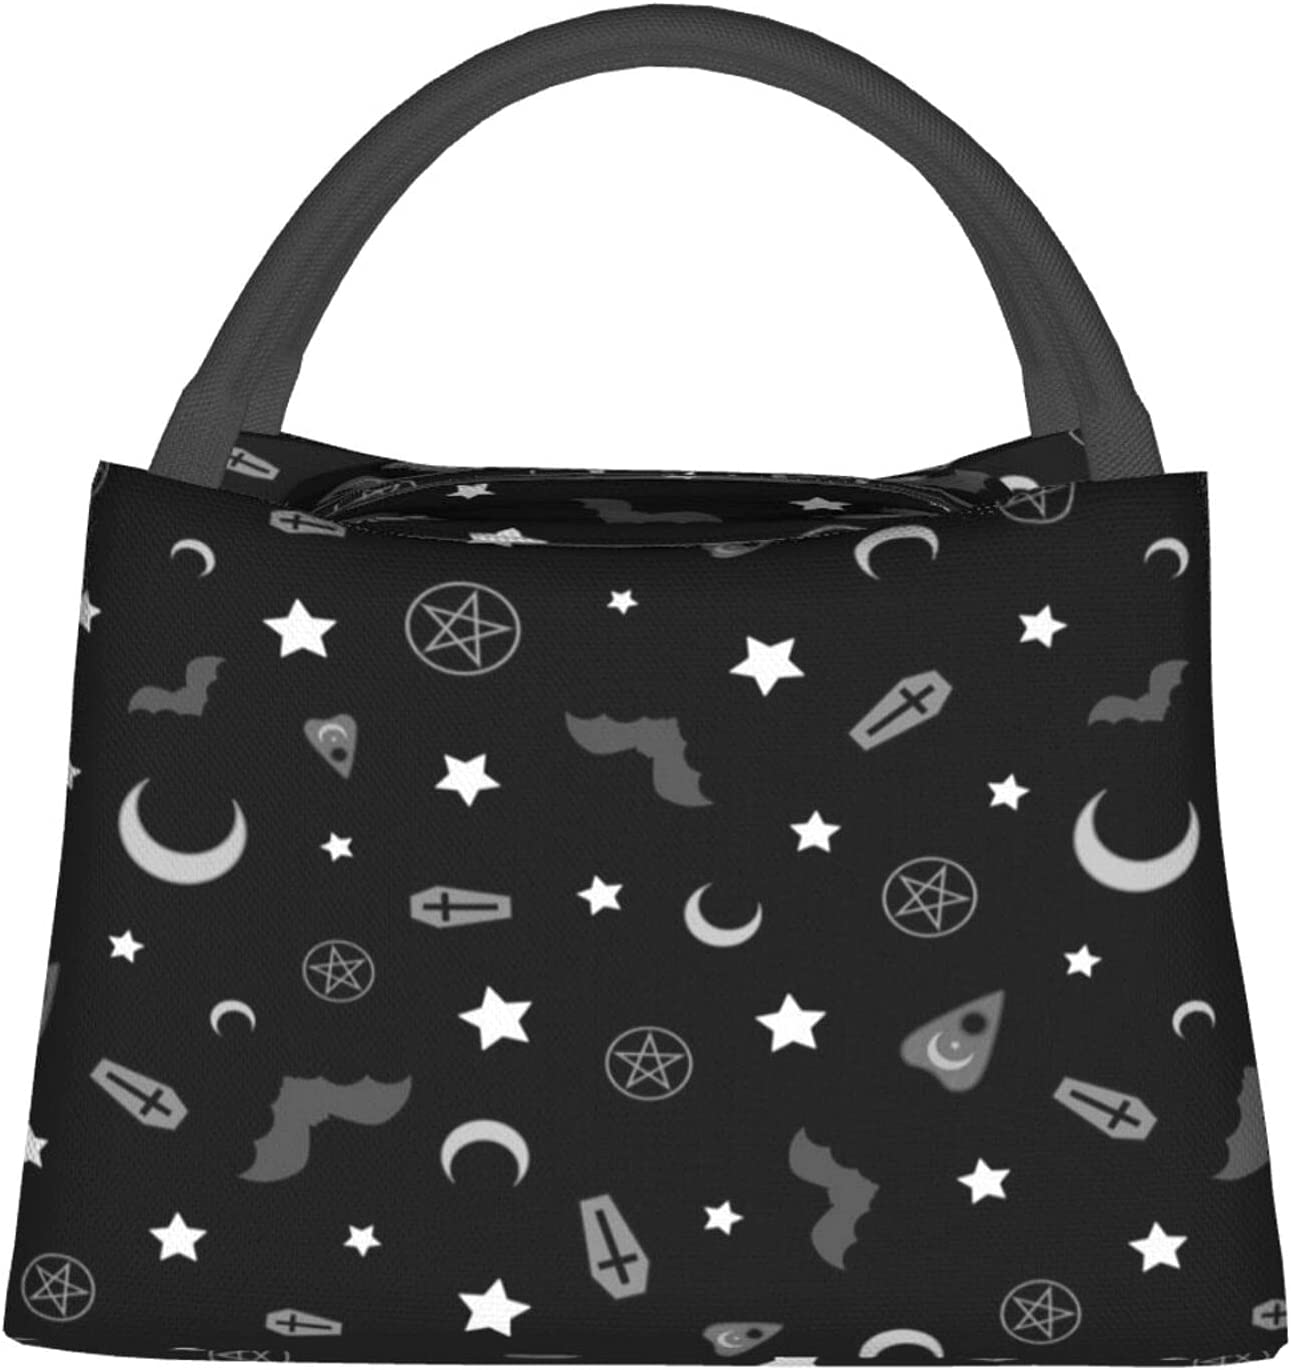 Goth Occult Pattern Mens Lunch Box Lunch Bag Insulated Lunch Box Bag Cooler Reusable Tote Bag Meal Prep Handbag For Men/Women/Girls/Boys